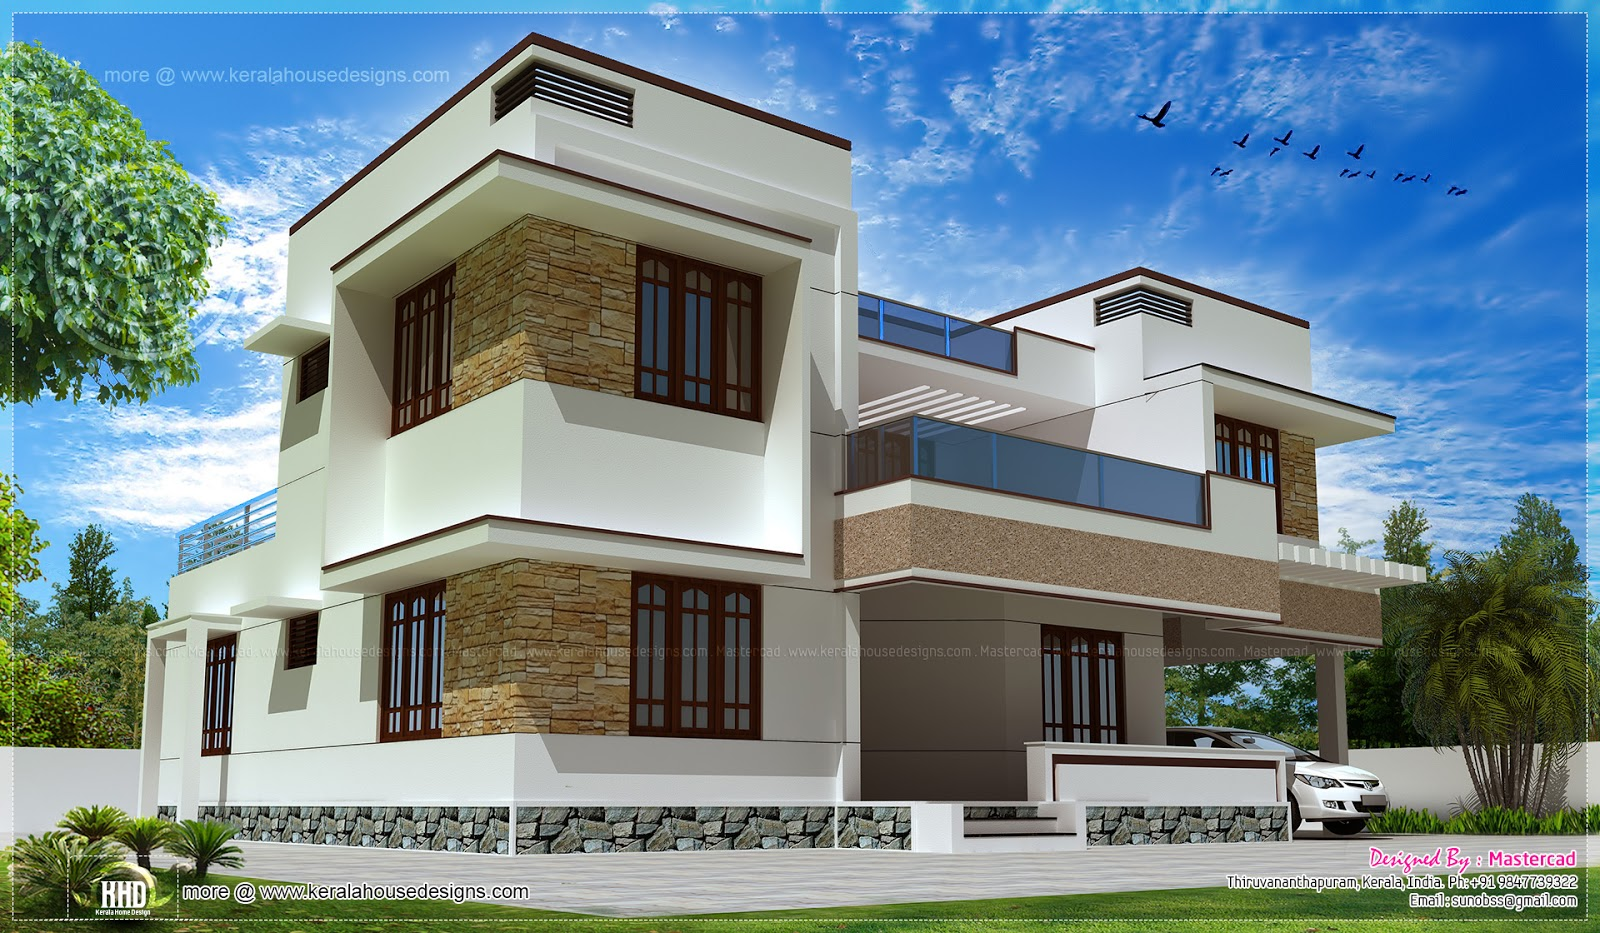 Modern flat roof villa exterior elevation kerala home for Kerala home design flat roof elevation